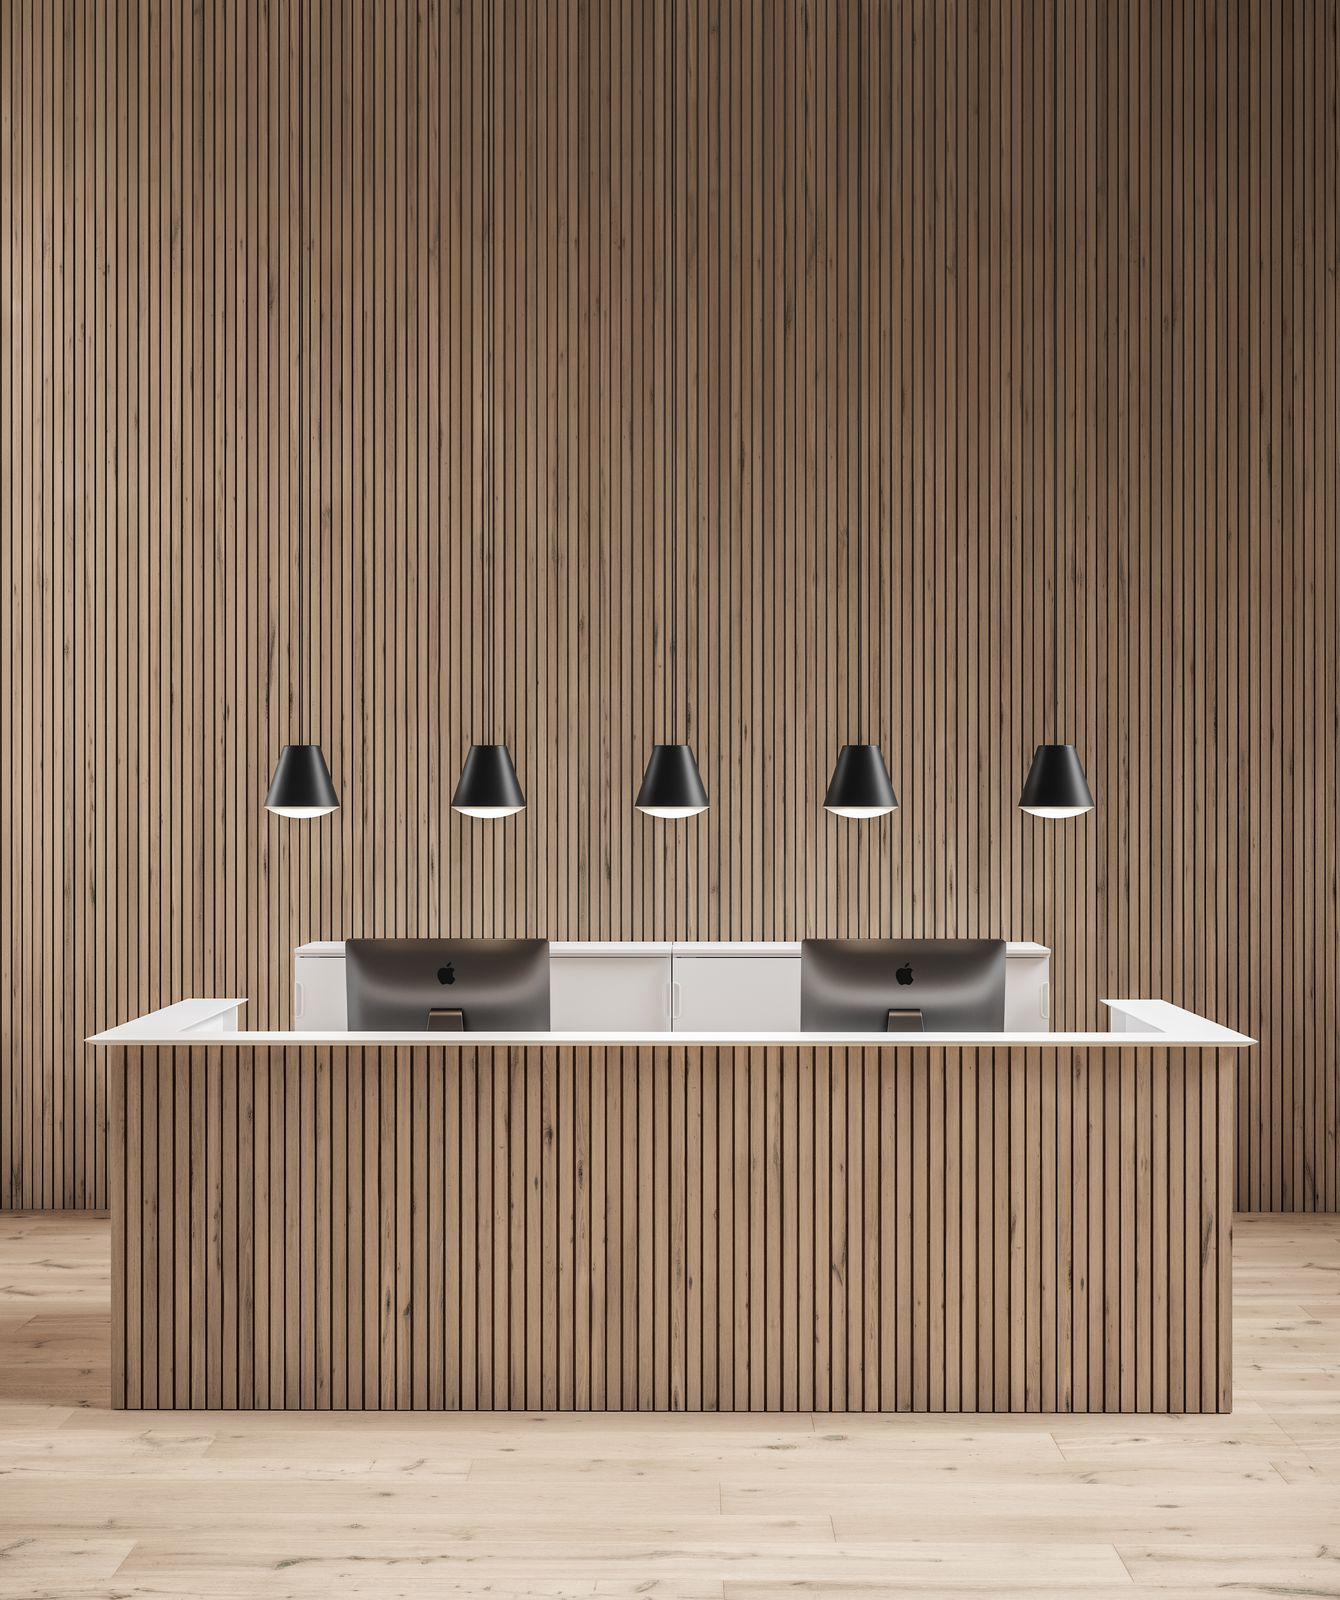 Reception area with beautiful wooden panels, JAMES HAY chairs, and HAY lamps in Nordic Light